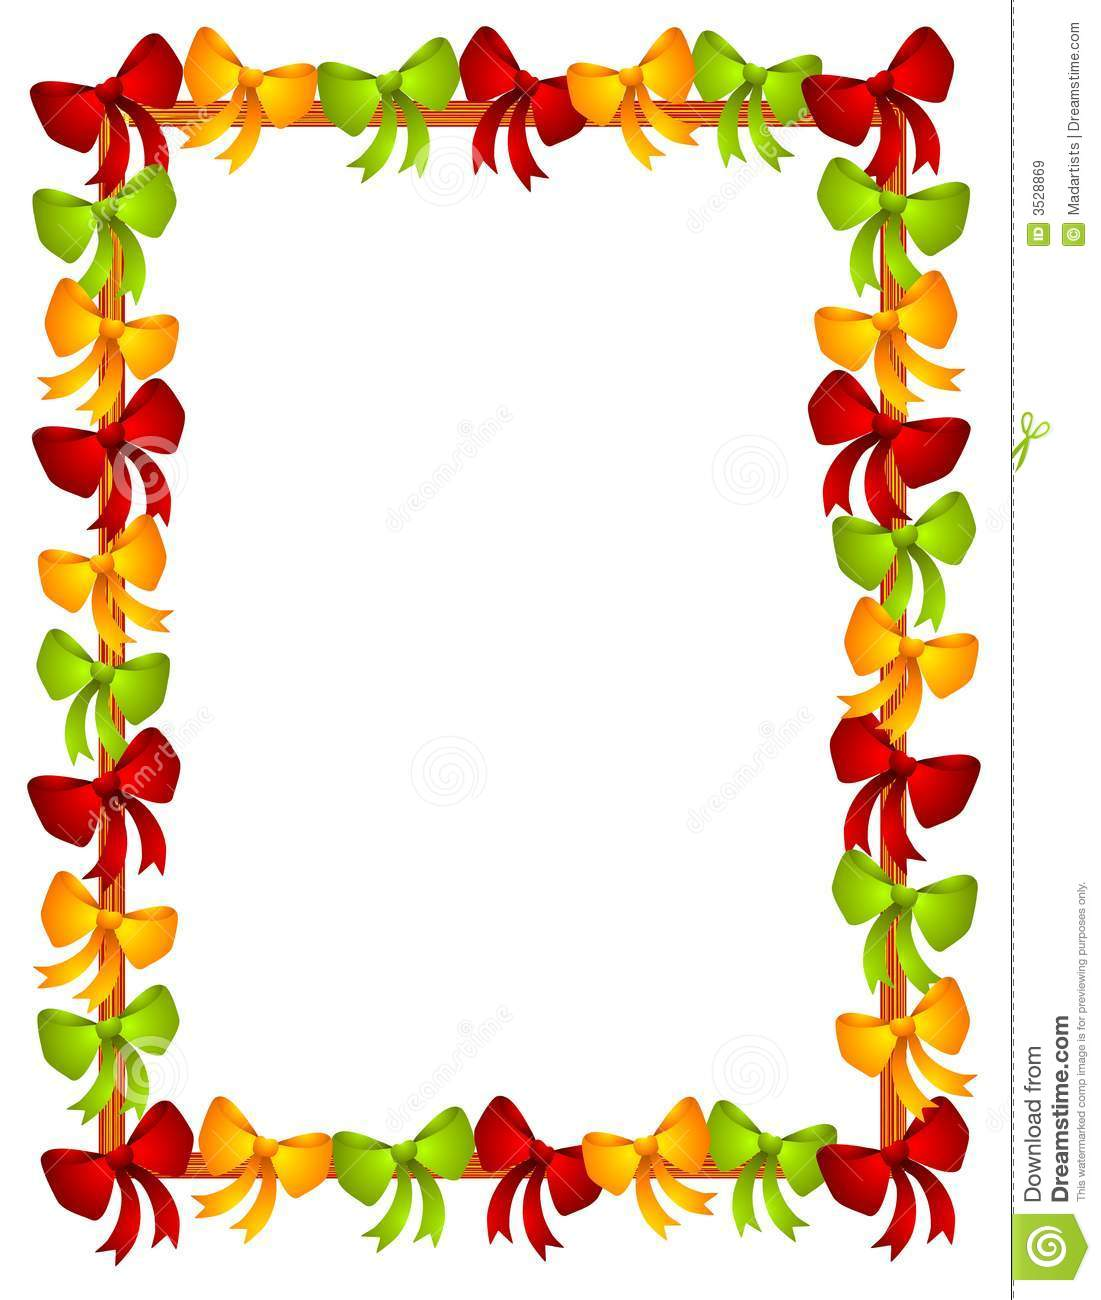 Christmas Borders Clipart.Christmas Clip Art Borders For Word Documents Clipart